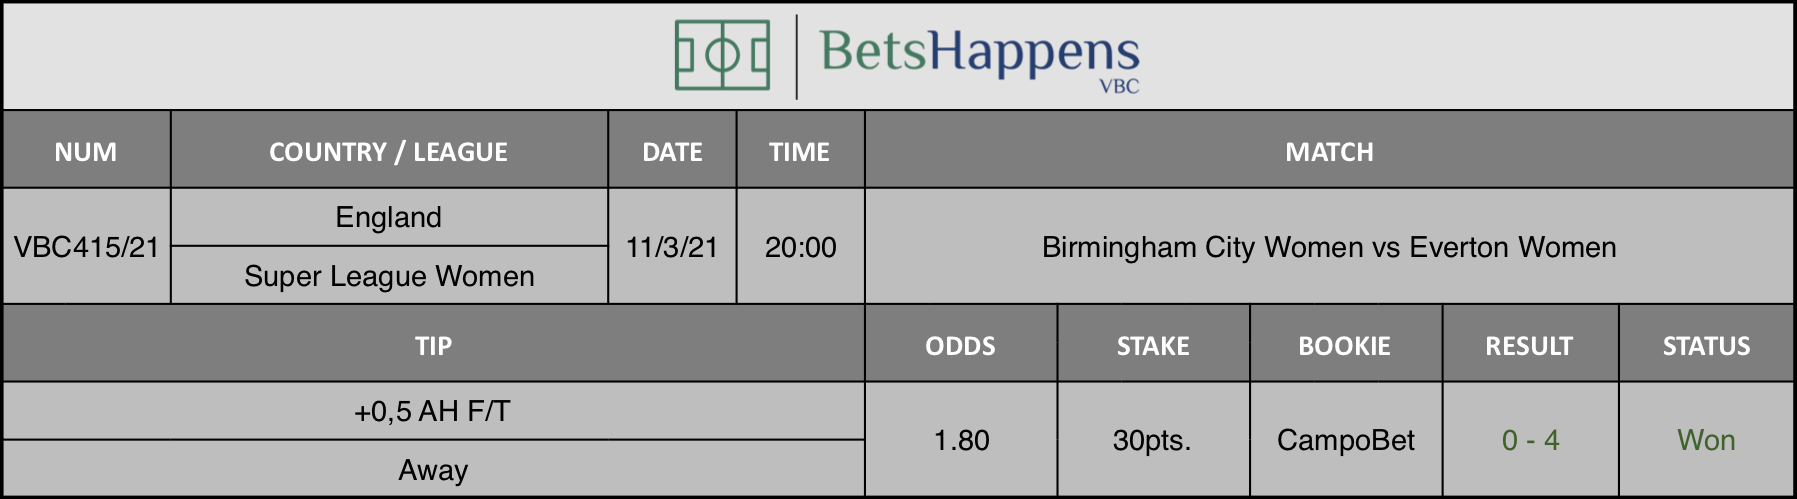 Results of our tip for the Birmingham City Women vs Everton Women match where +0,5 AH F/T Away is recommended.